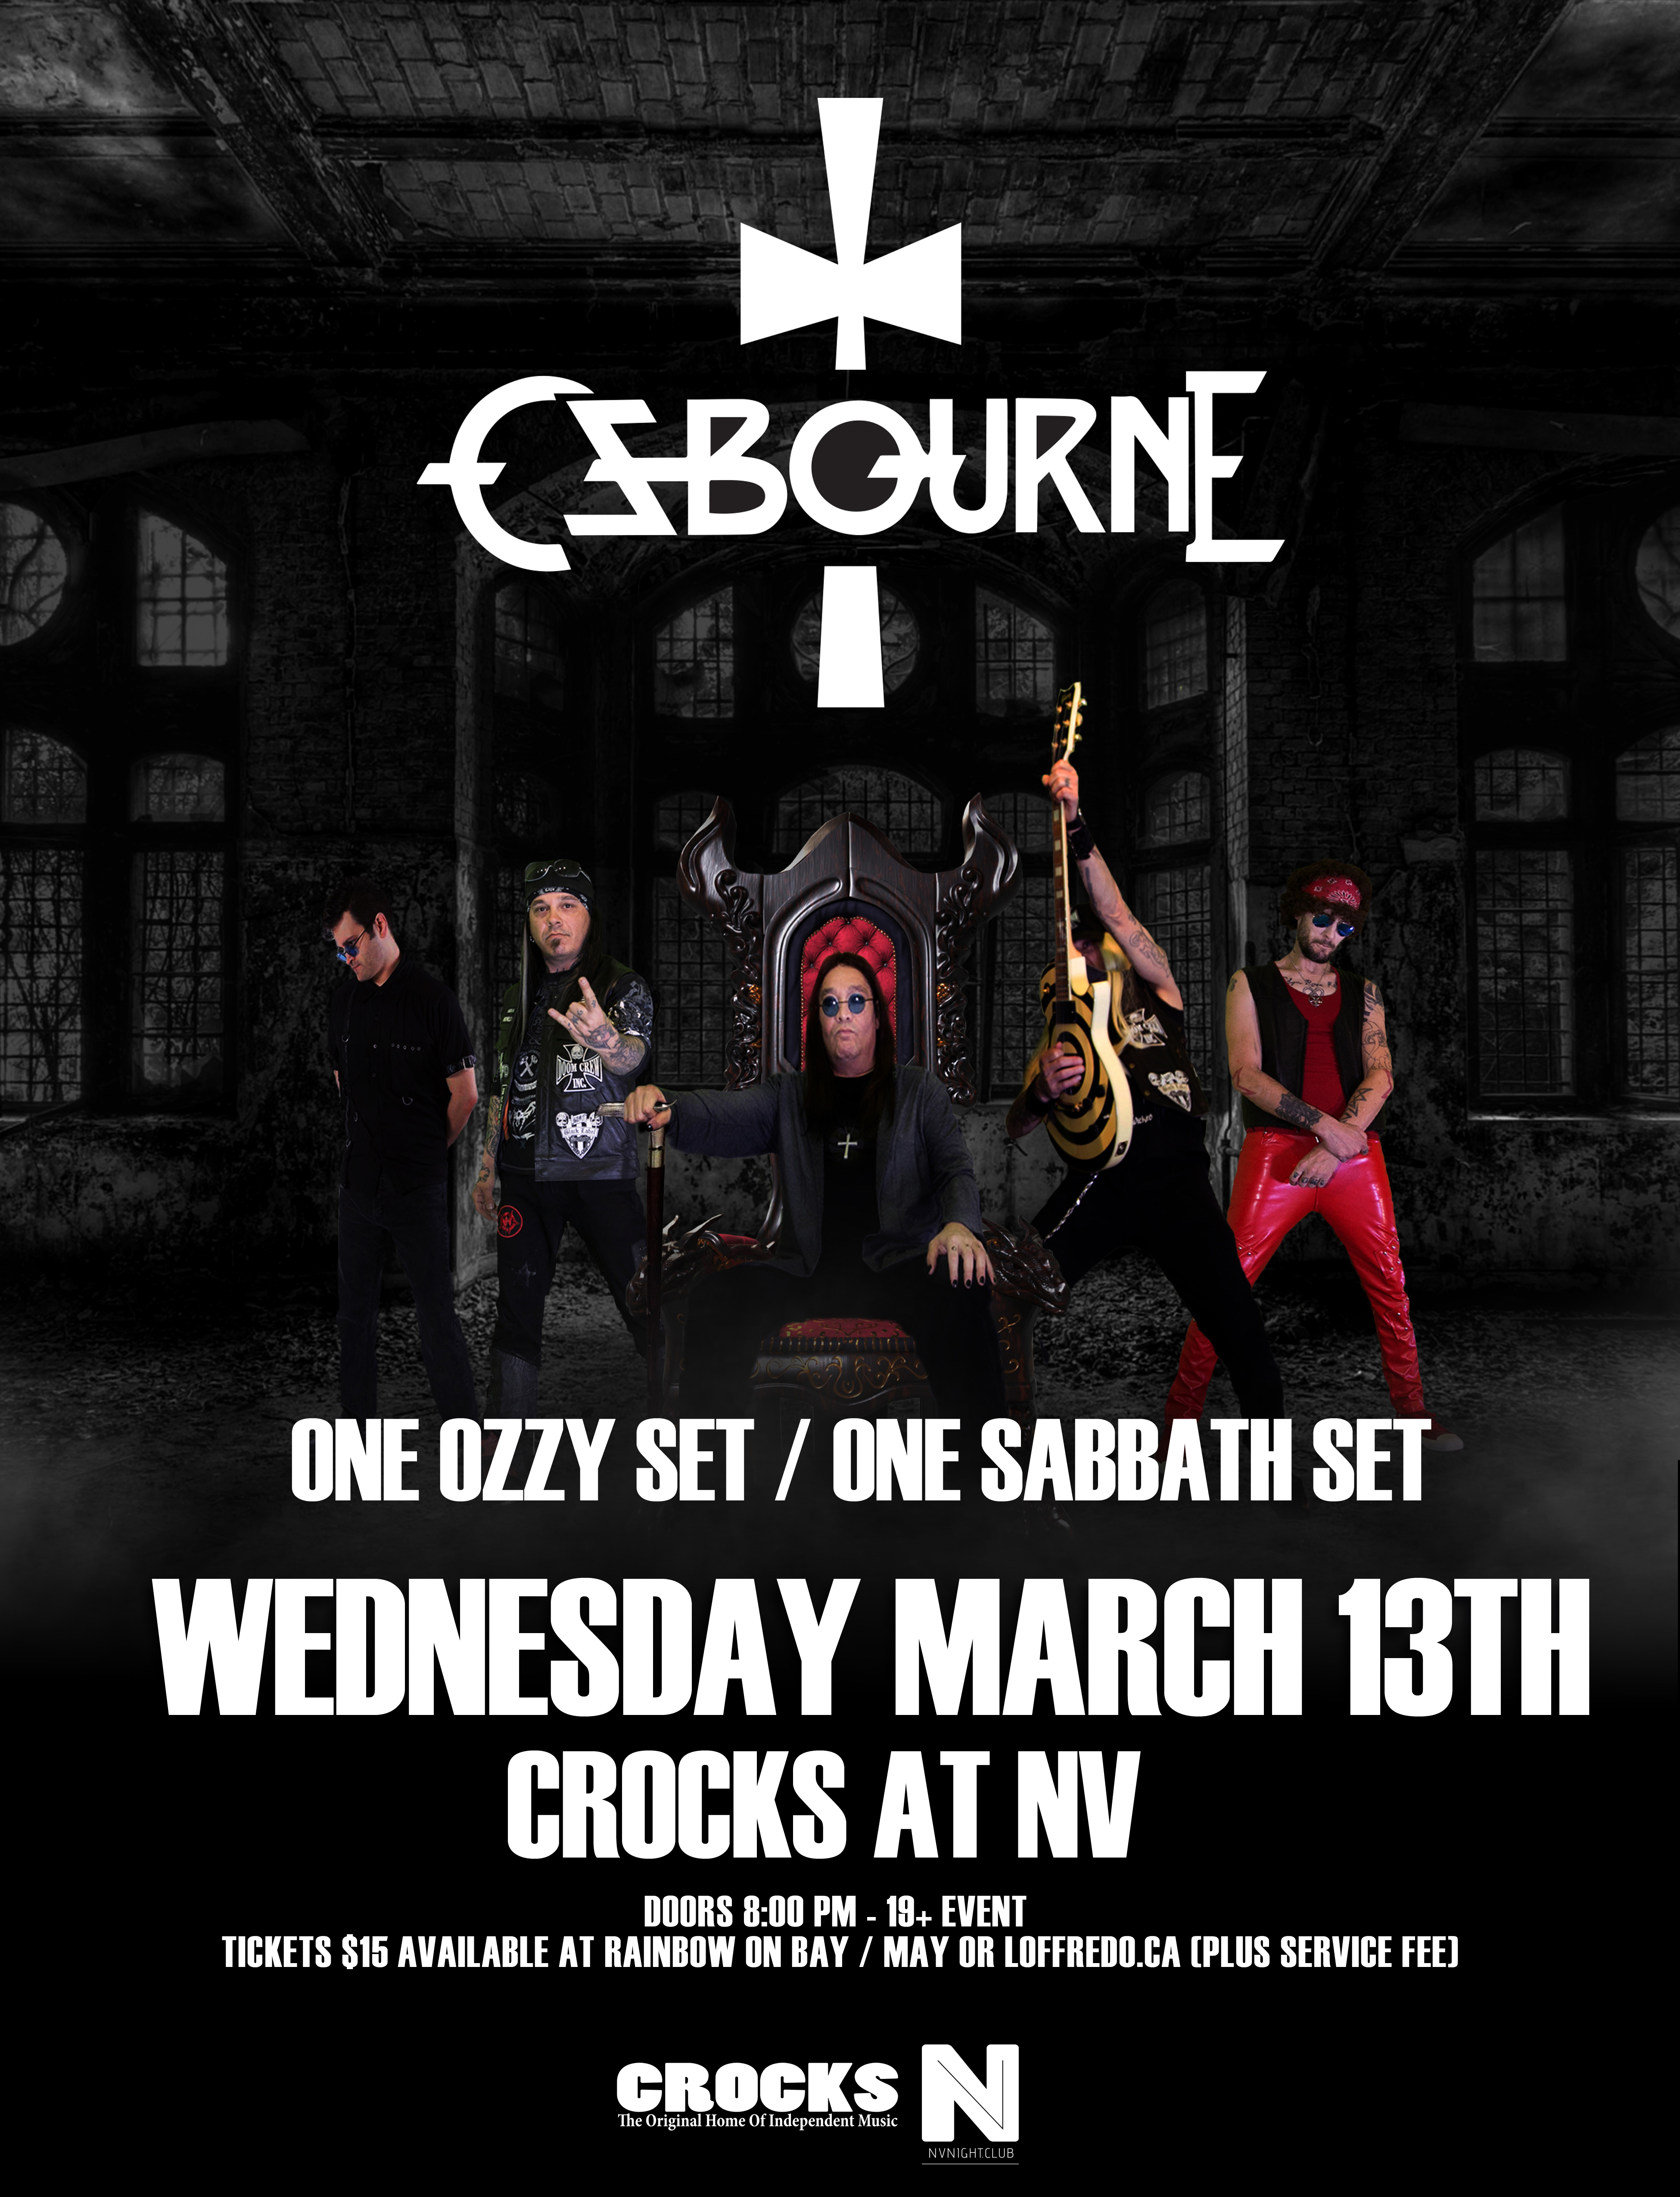 Ozbourne - The Ultimate Ozzy Experience - March 13 - Crocks At NV 00288